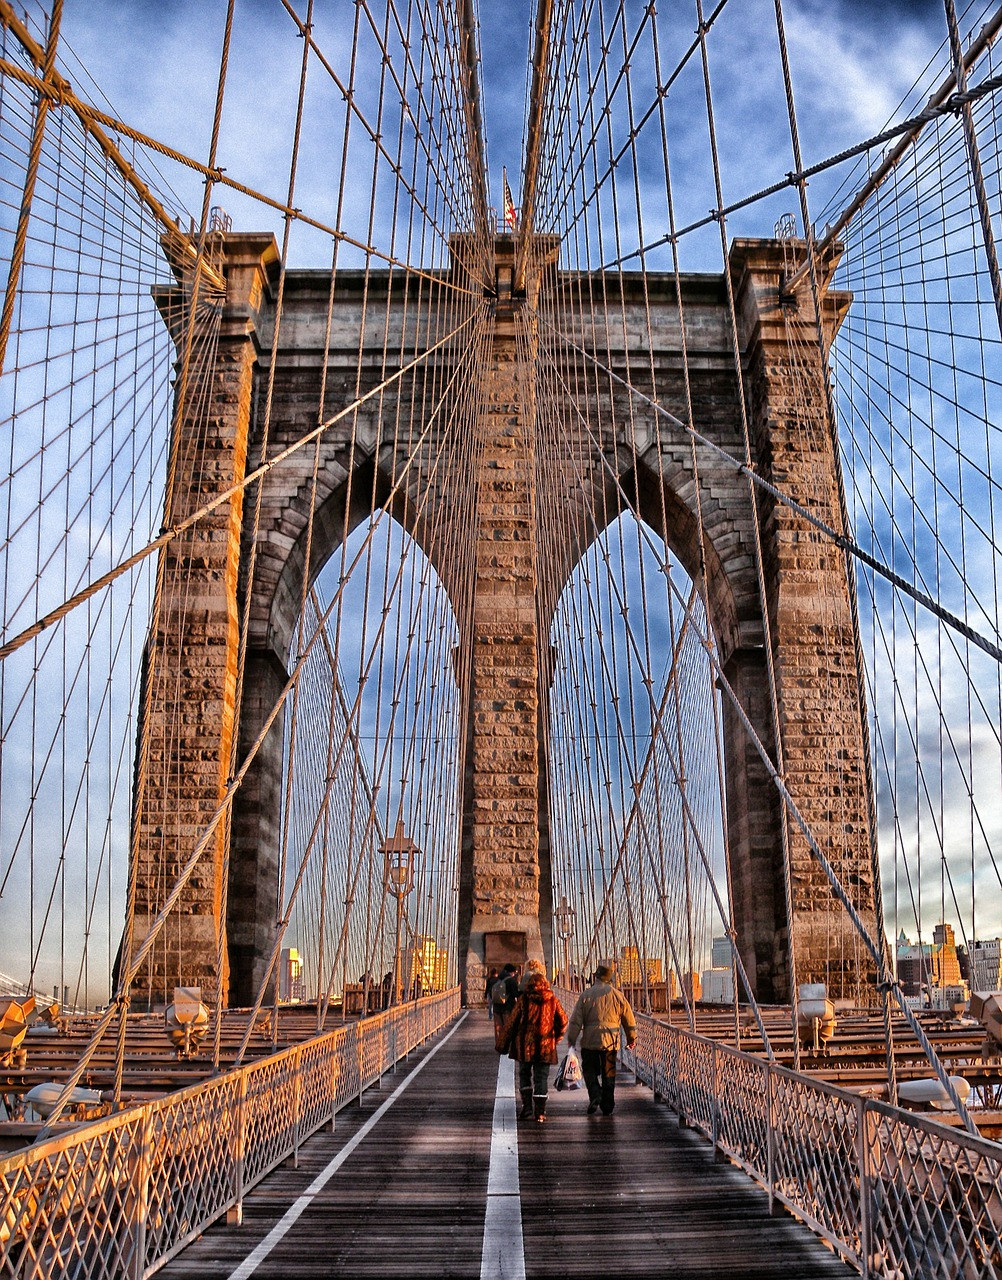 Attractions for children in New York